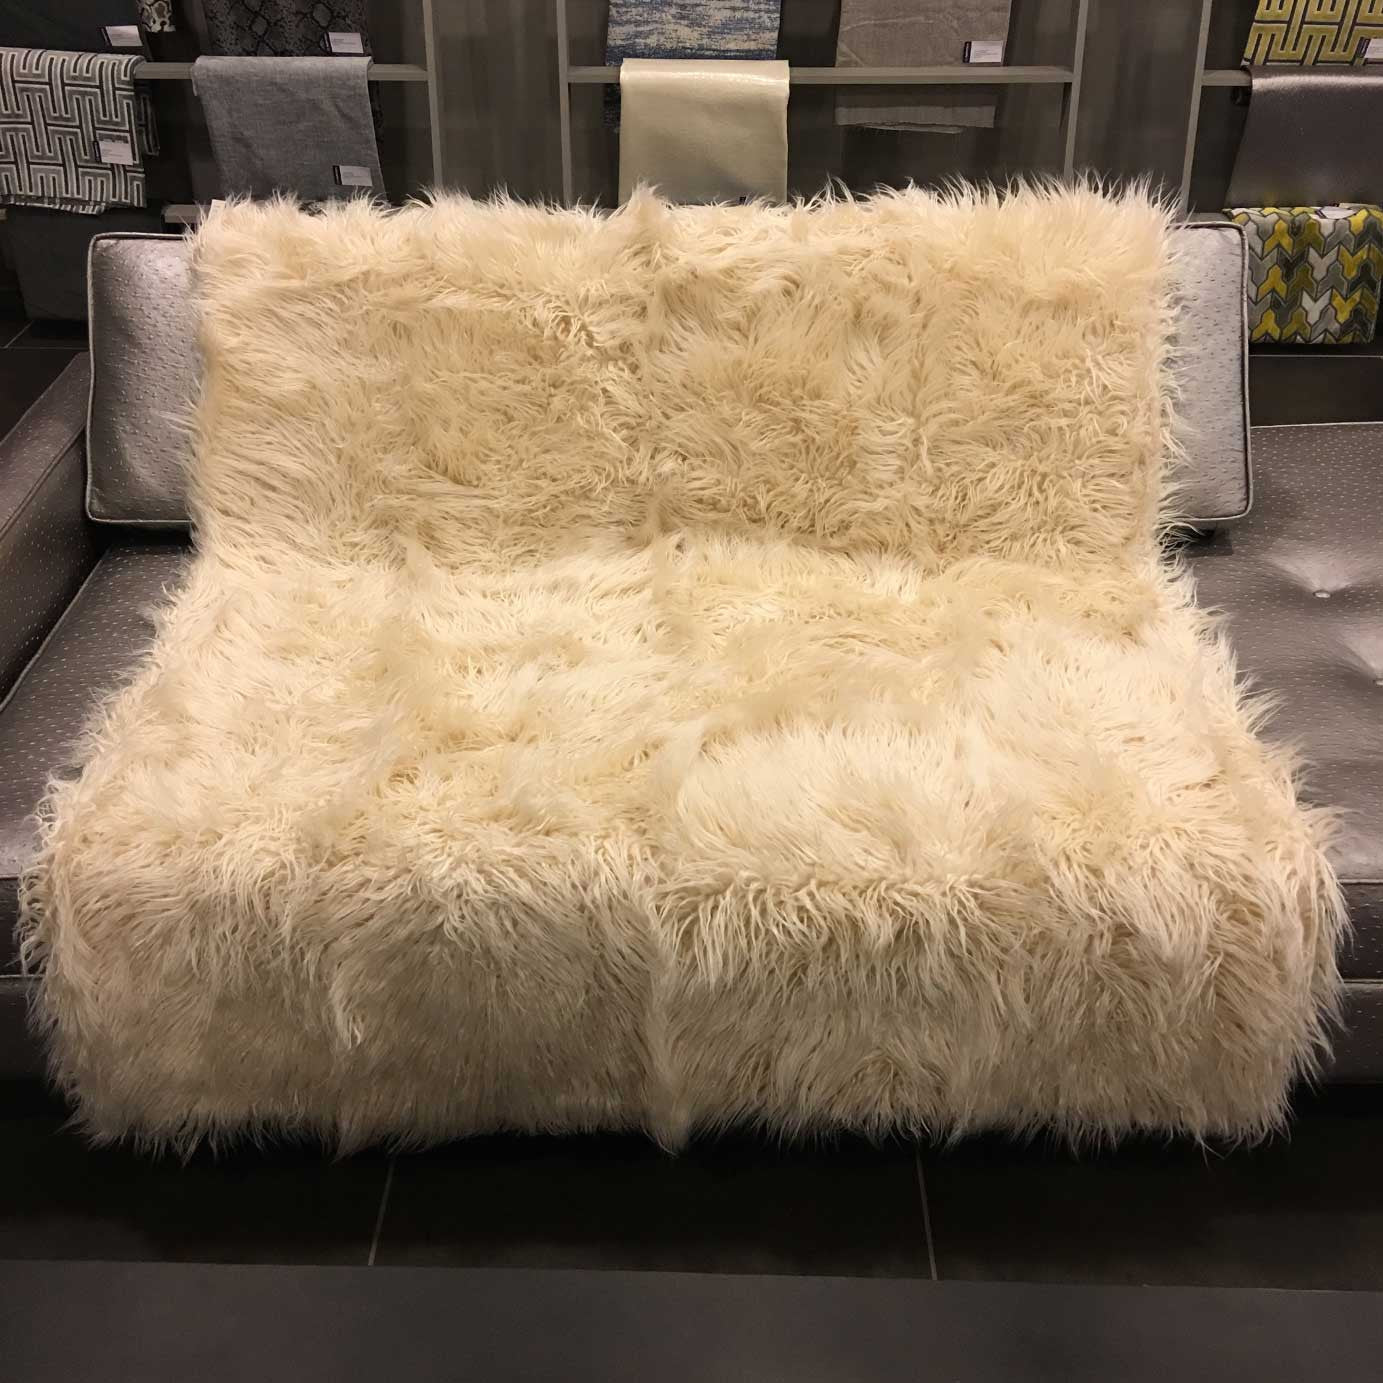 ... Gigi   Luxurious Shaggy Faux Fur Throw Blanket   Available In 12 Colors    Vanilla ...